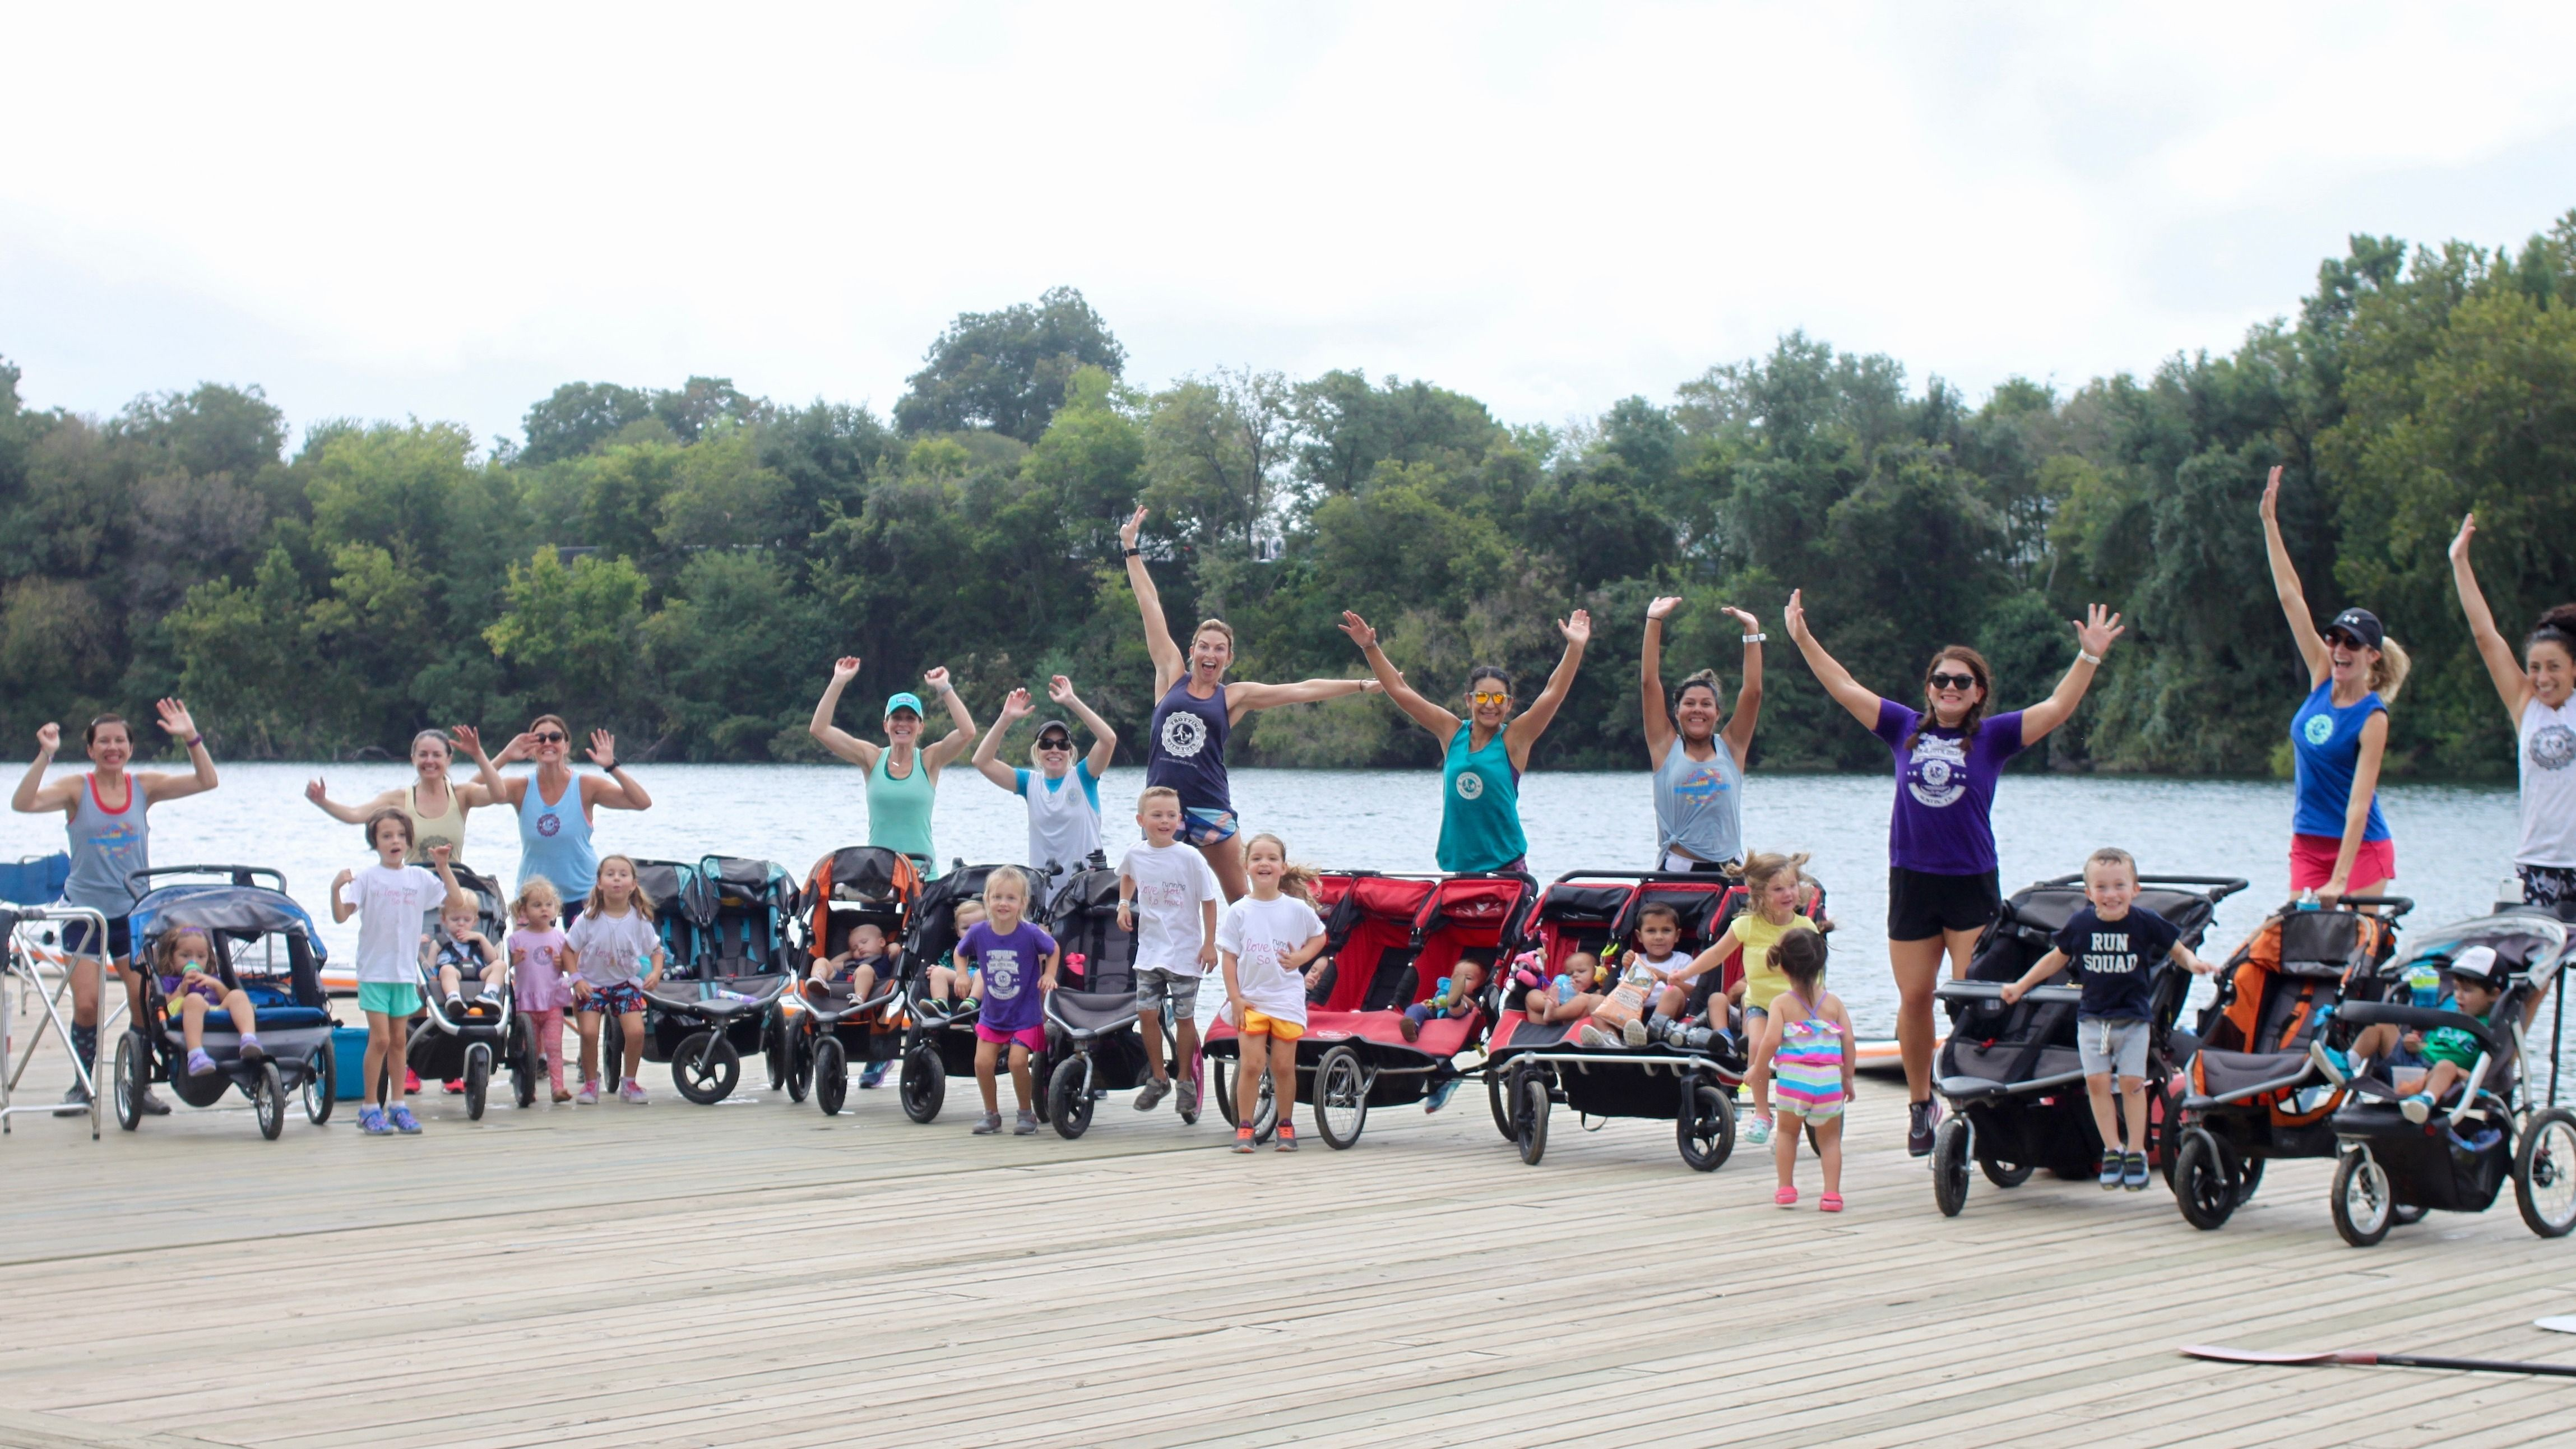 Trotting With Tots: (An Active Group for Moms w/ Strollers)